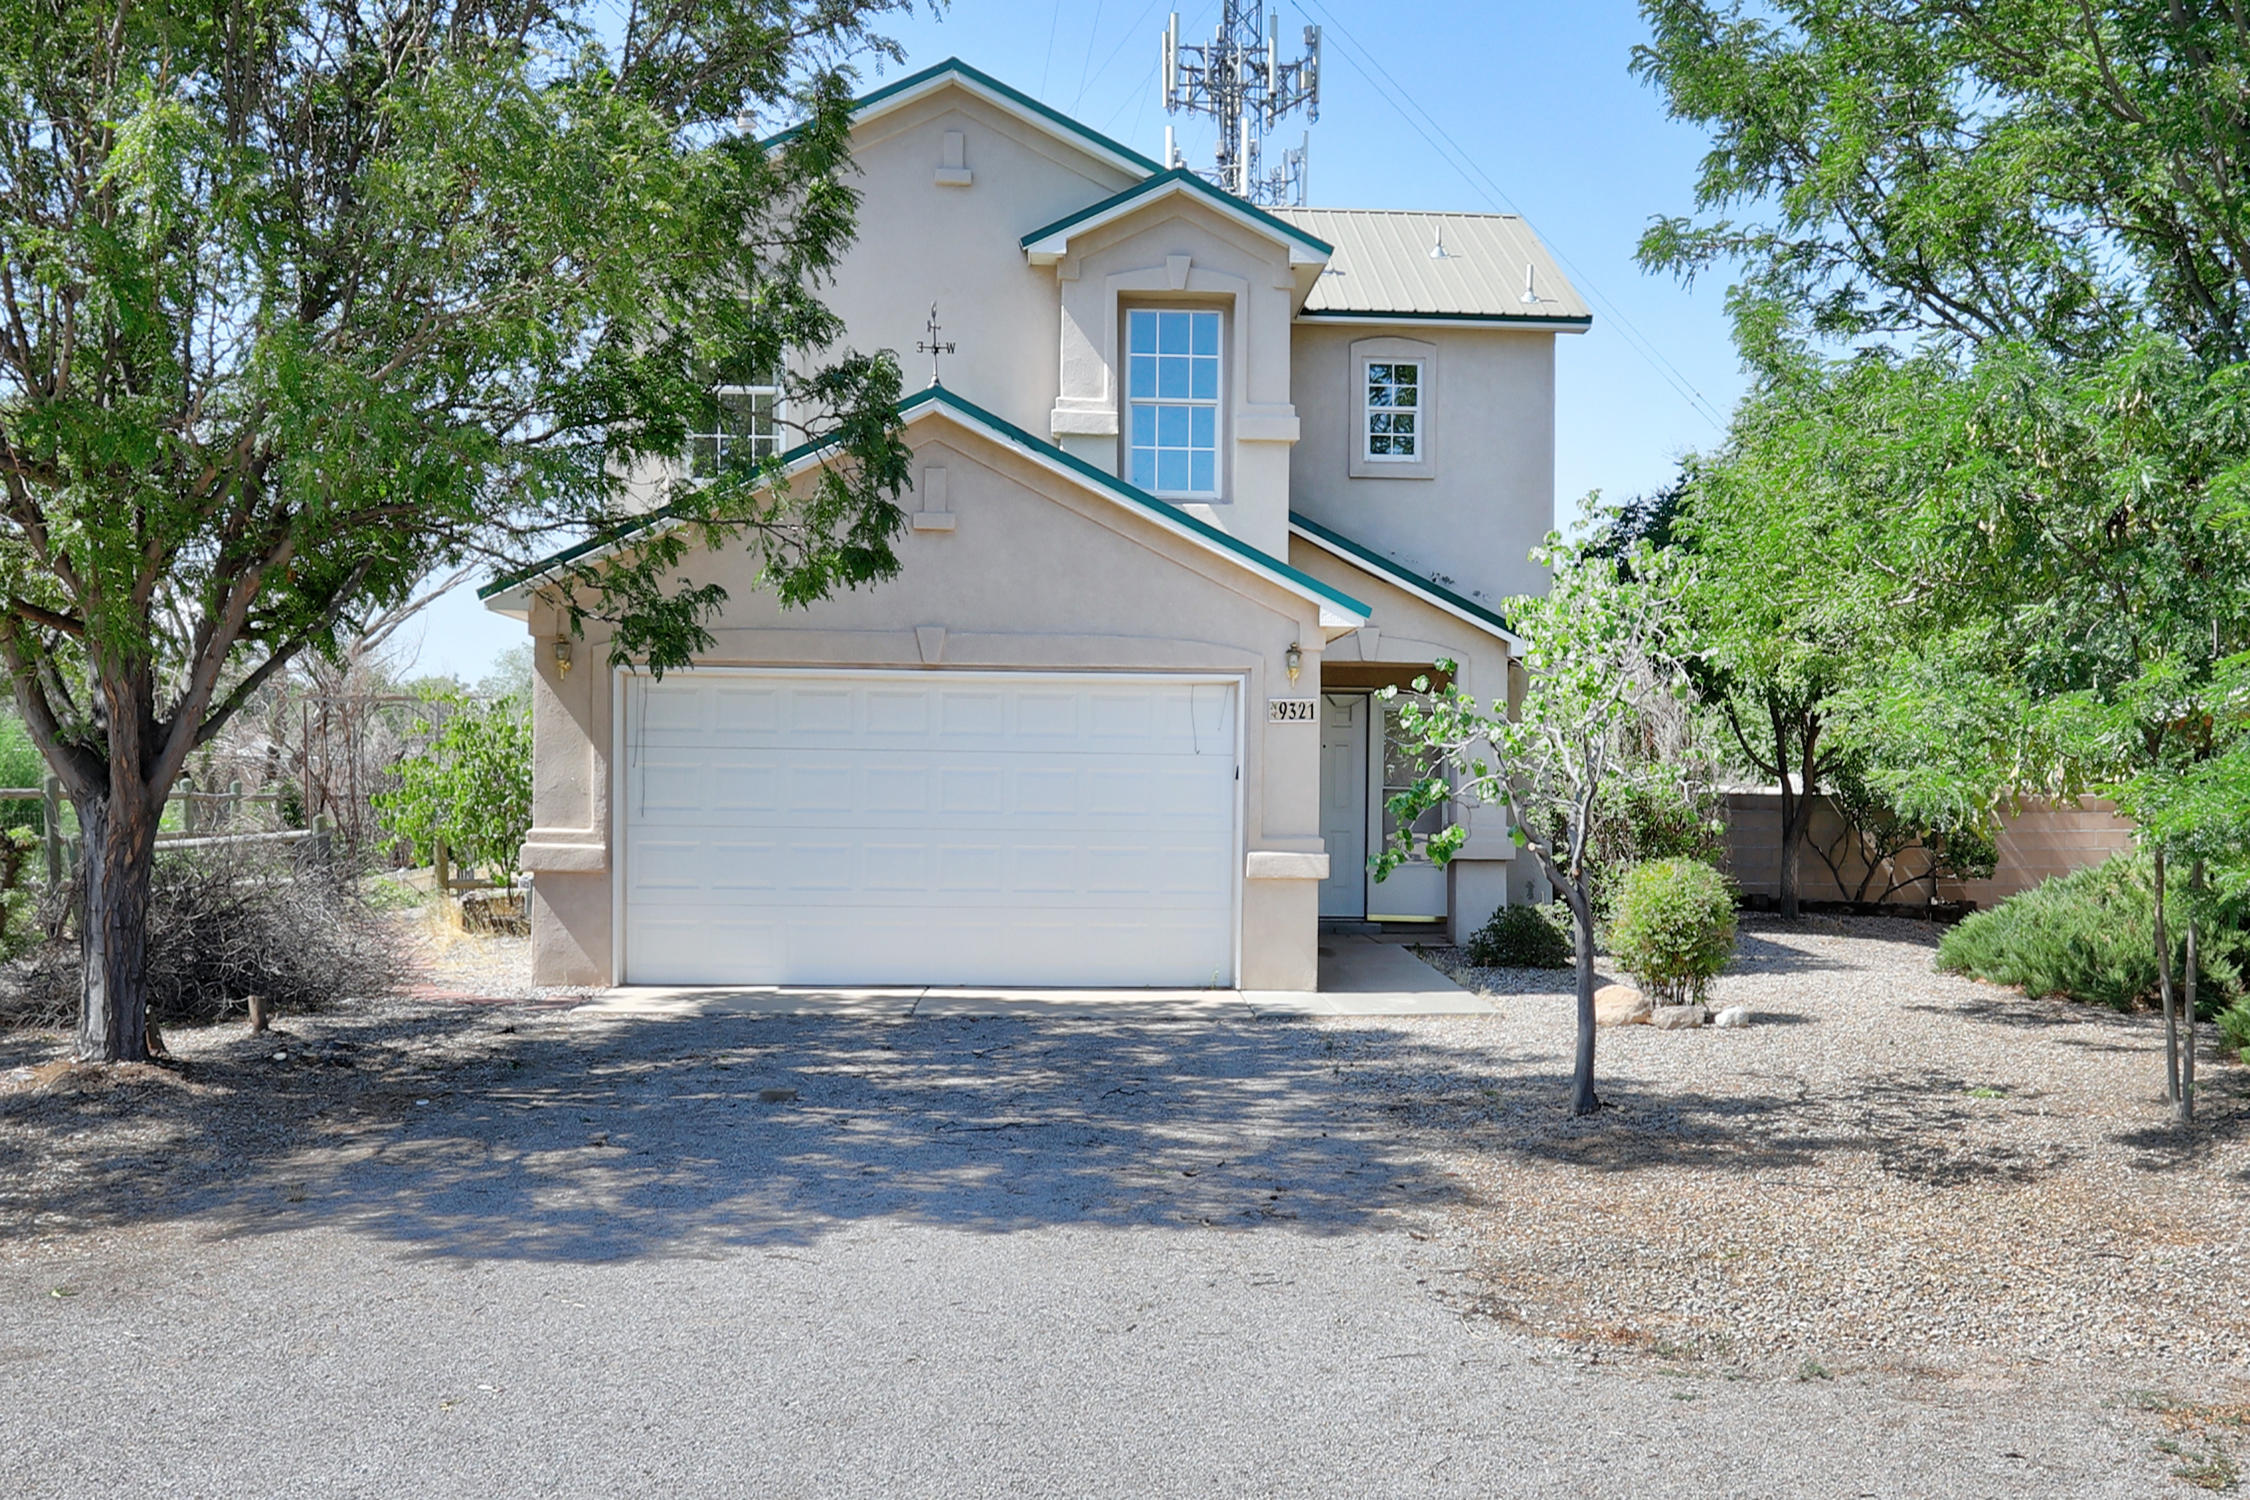 Nice home in the desirable north valley.  Landscape updates, inside has been deep cleaned, roof maintenance completed. Home is sold as is.